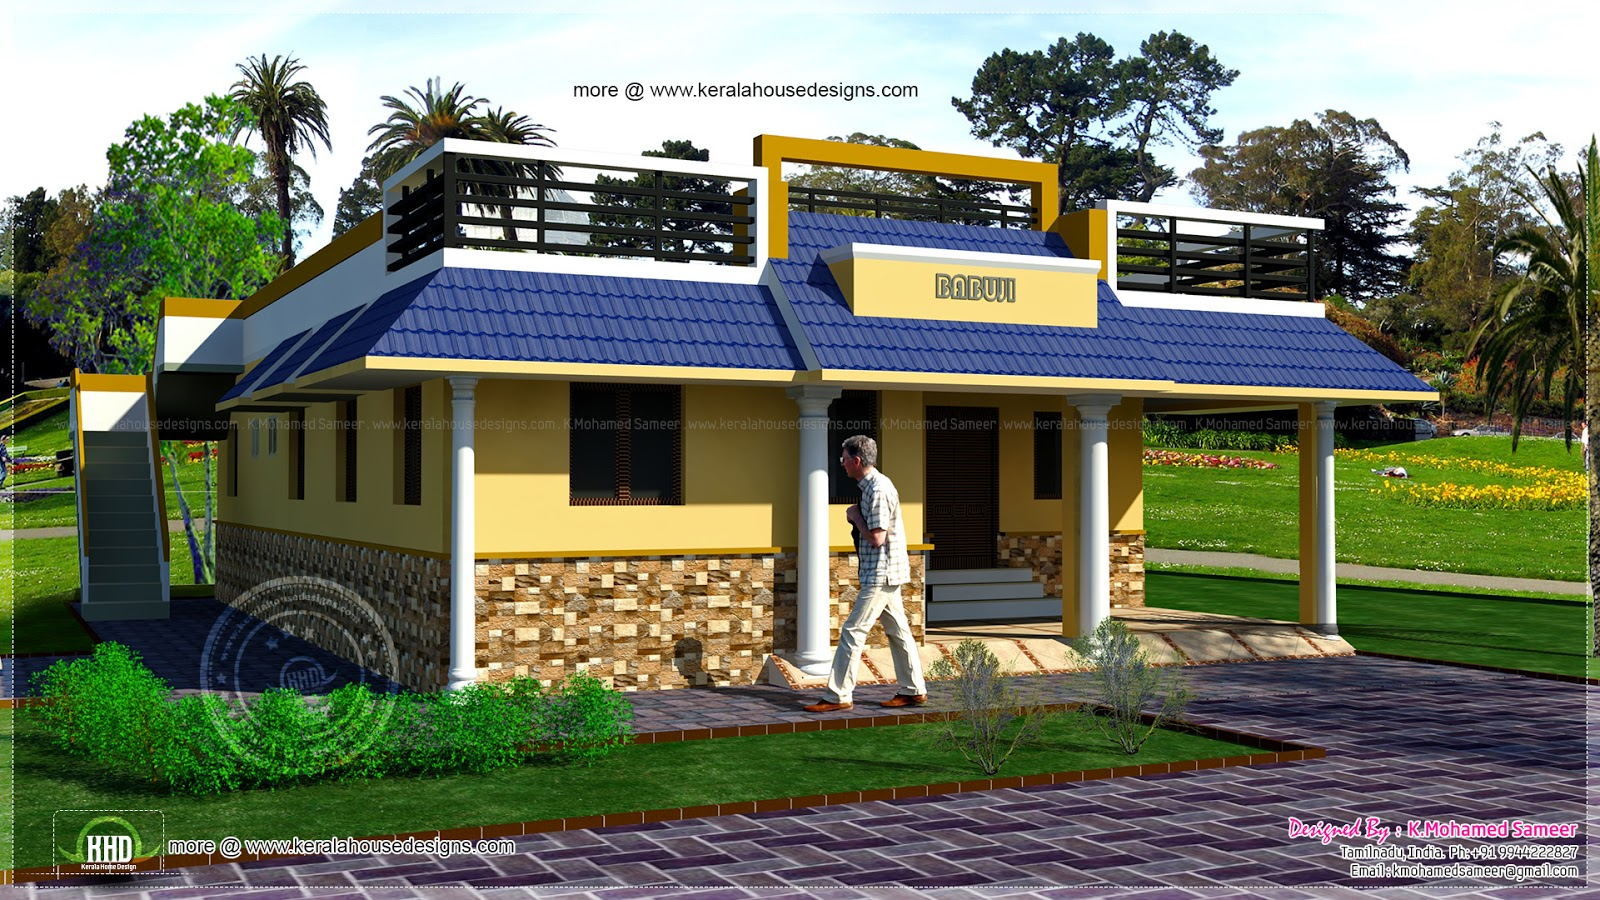 3 bedroom single floor house plan kerala home design and for Tamilnadu house designs photos